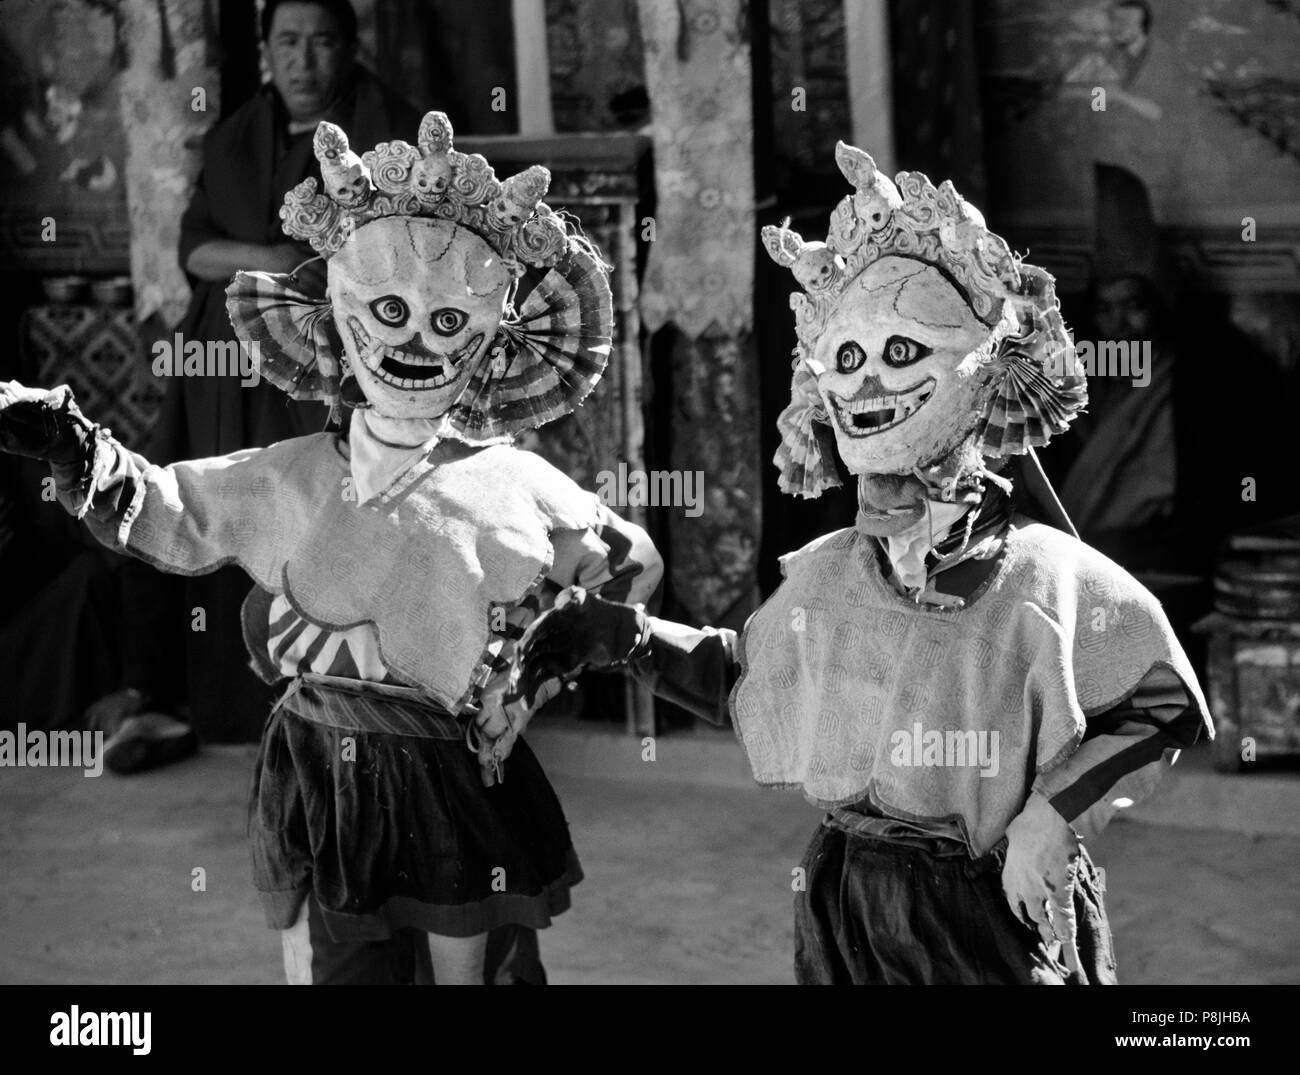 SKULL MASK DANCERS, representing non-attachment, and used as comic relief, TIKSE Monastery Masked Dances - LADAKH, INDIA - Stock Image